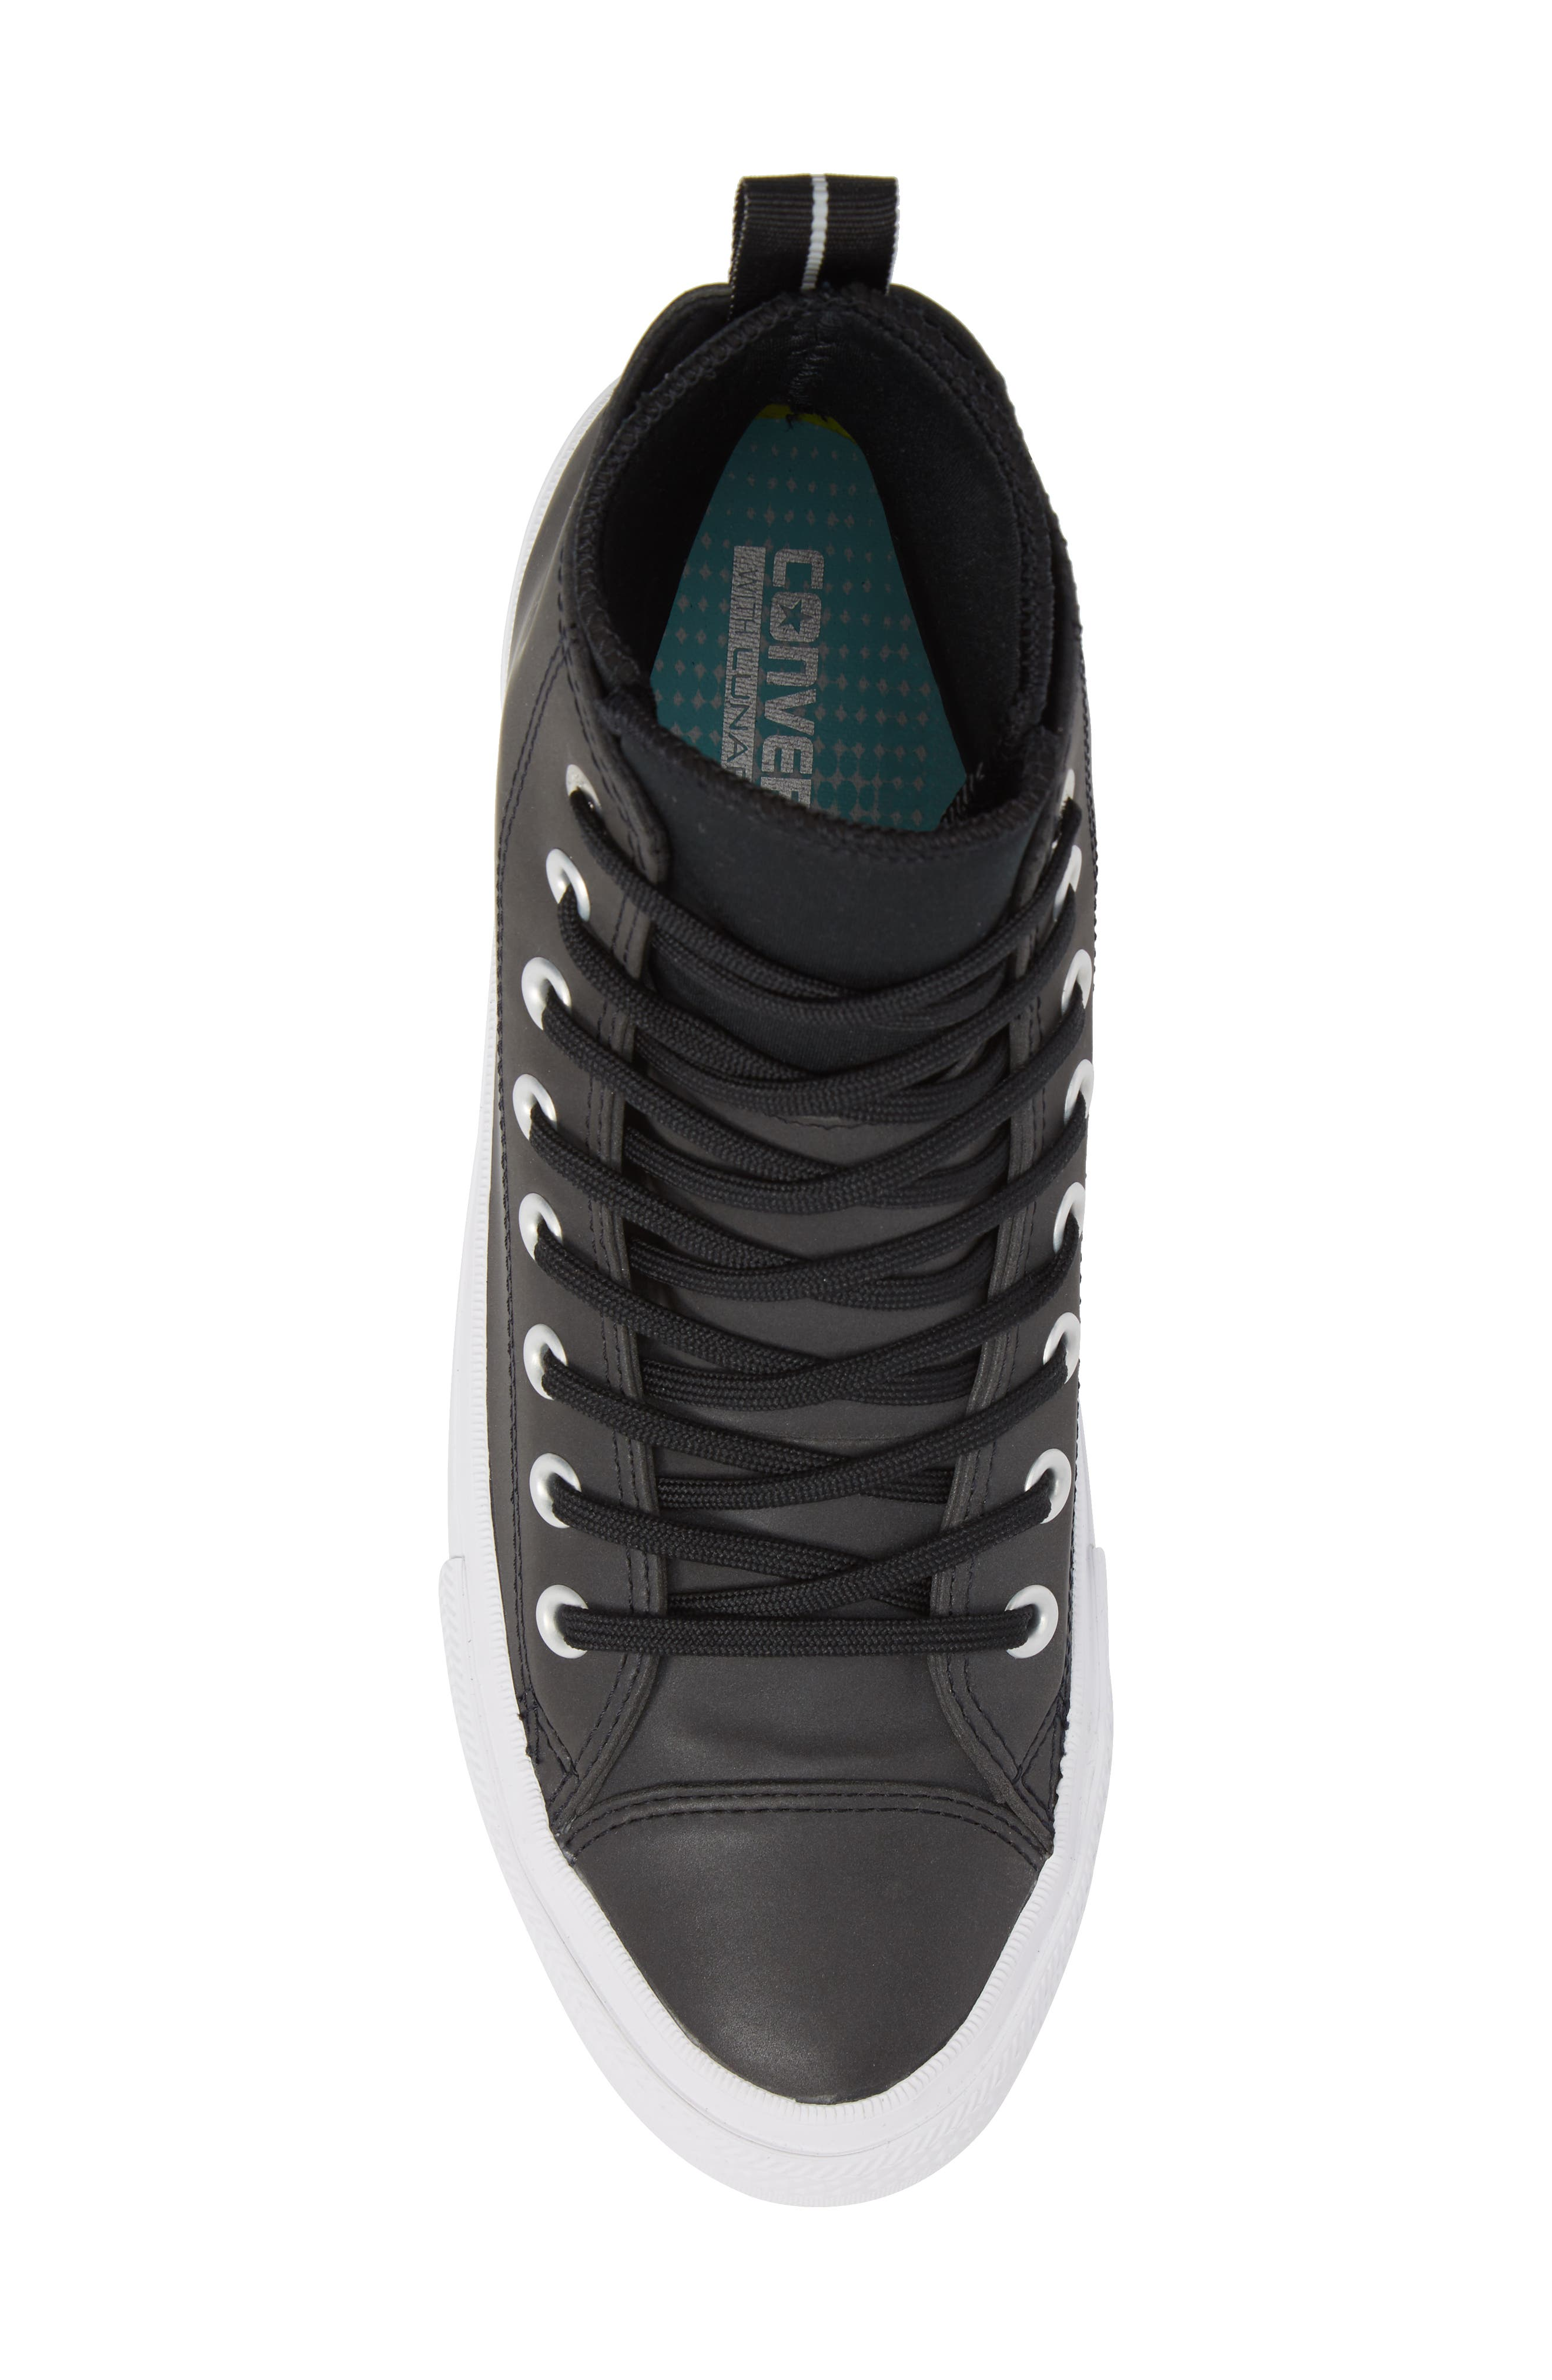 Chuck Taylor<sup>®</sup> All Star<sup>®</sup> Counter Climate Waterproof Sneaker,                             Alternate thumbnail 5, color,                             Black